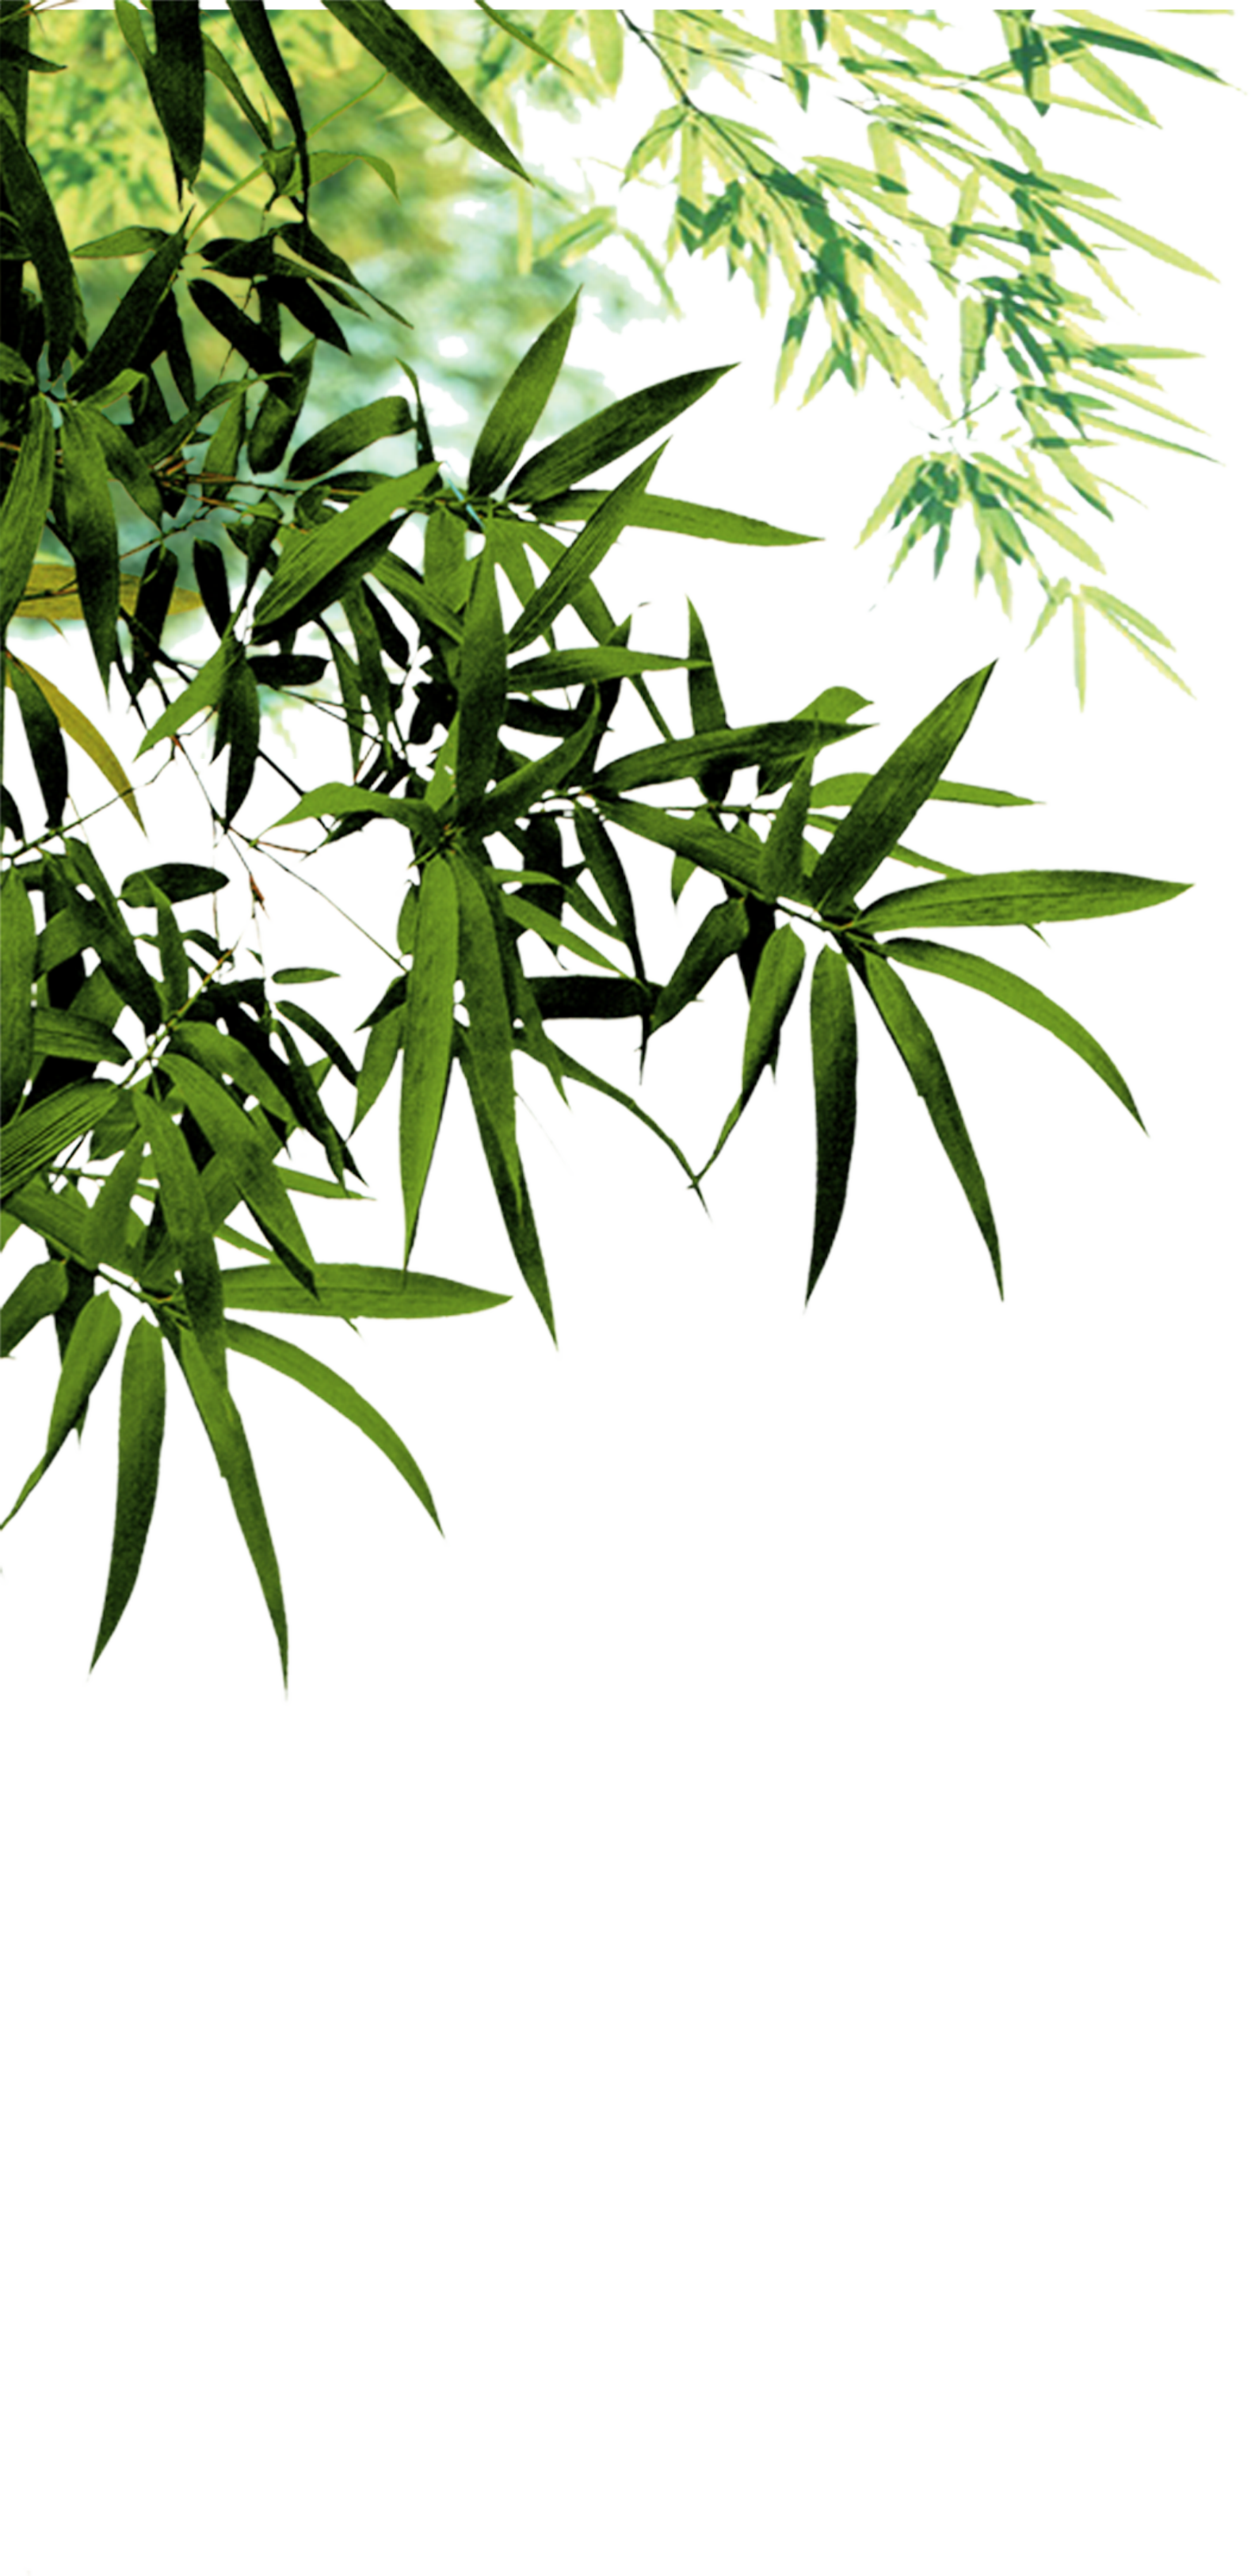 clipart library Bamboo transparent plant leaves. Anji county charcoal software